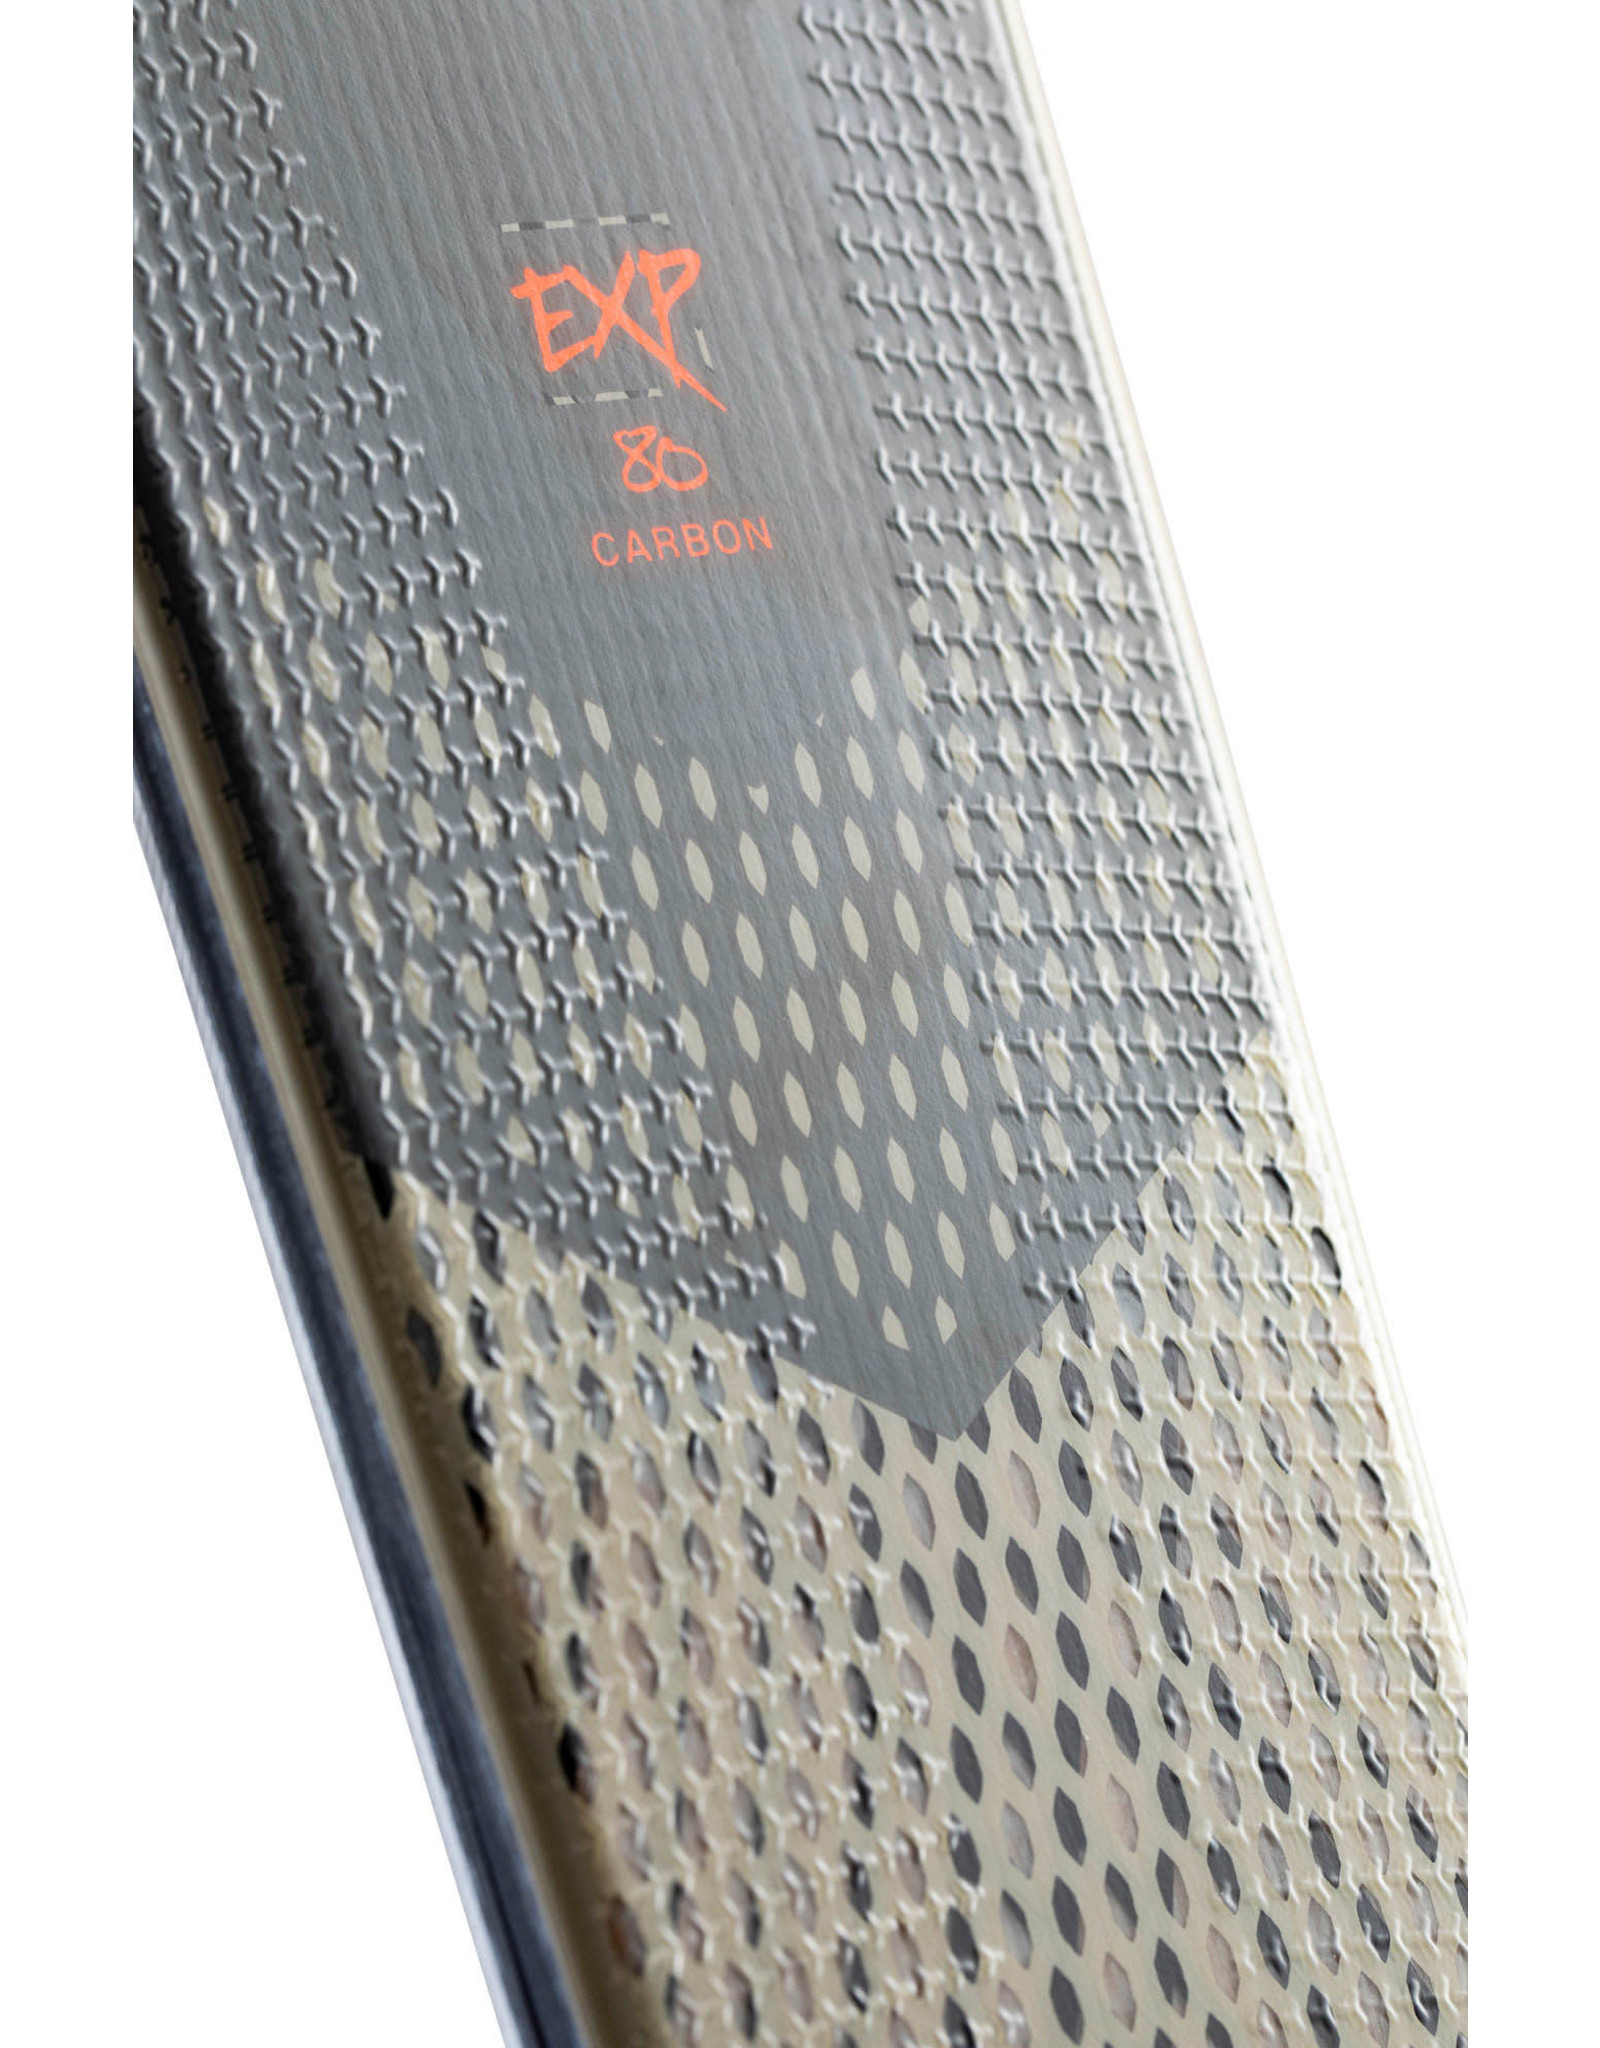 Rossignol EXPERIENCE 80 CARBON XPRESS XP11